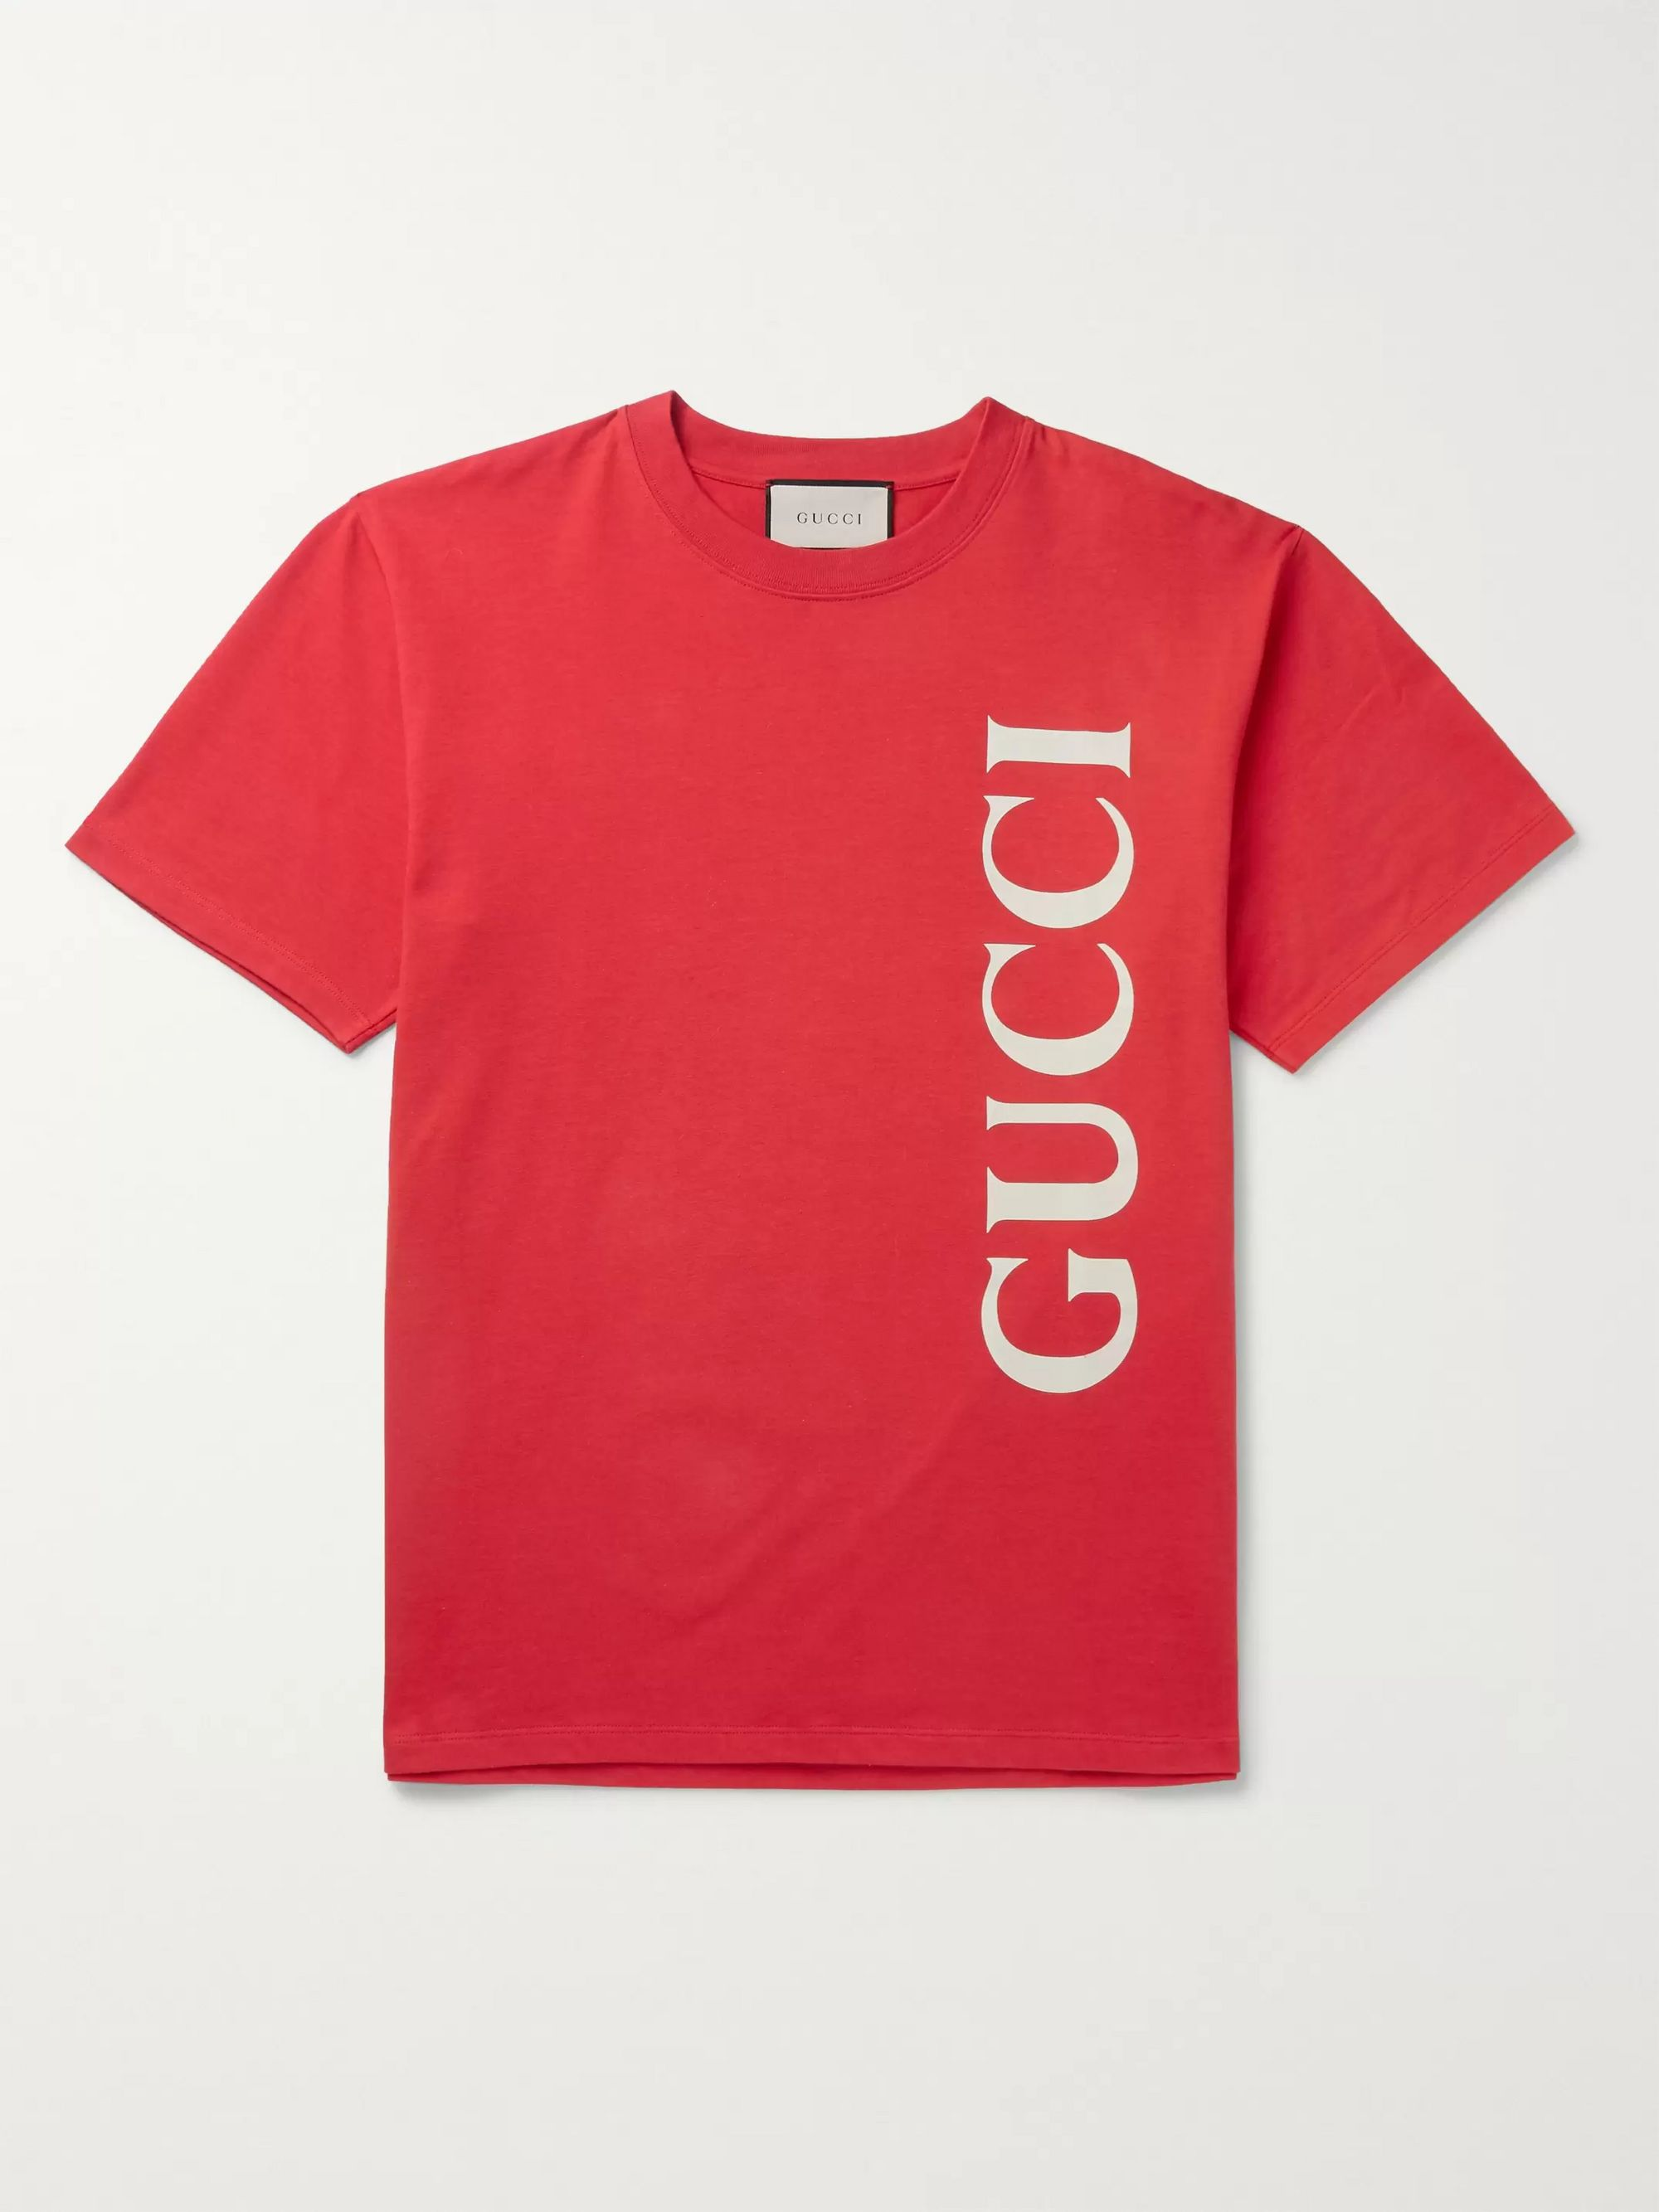 구찌 Gucci Oversized Logo-Print Cotton-Jersey T-Shirt,Red